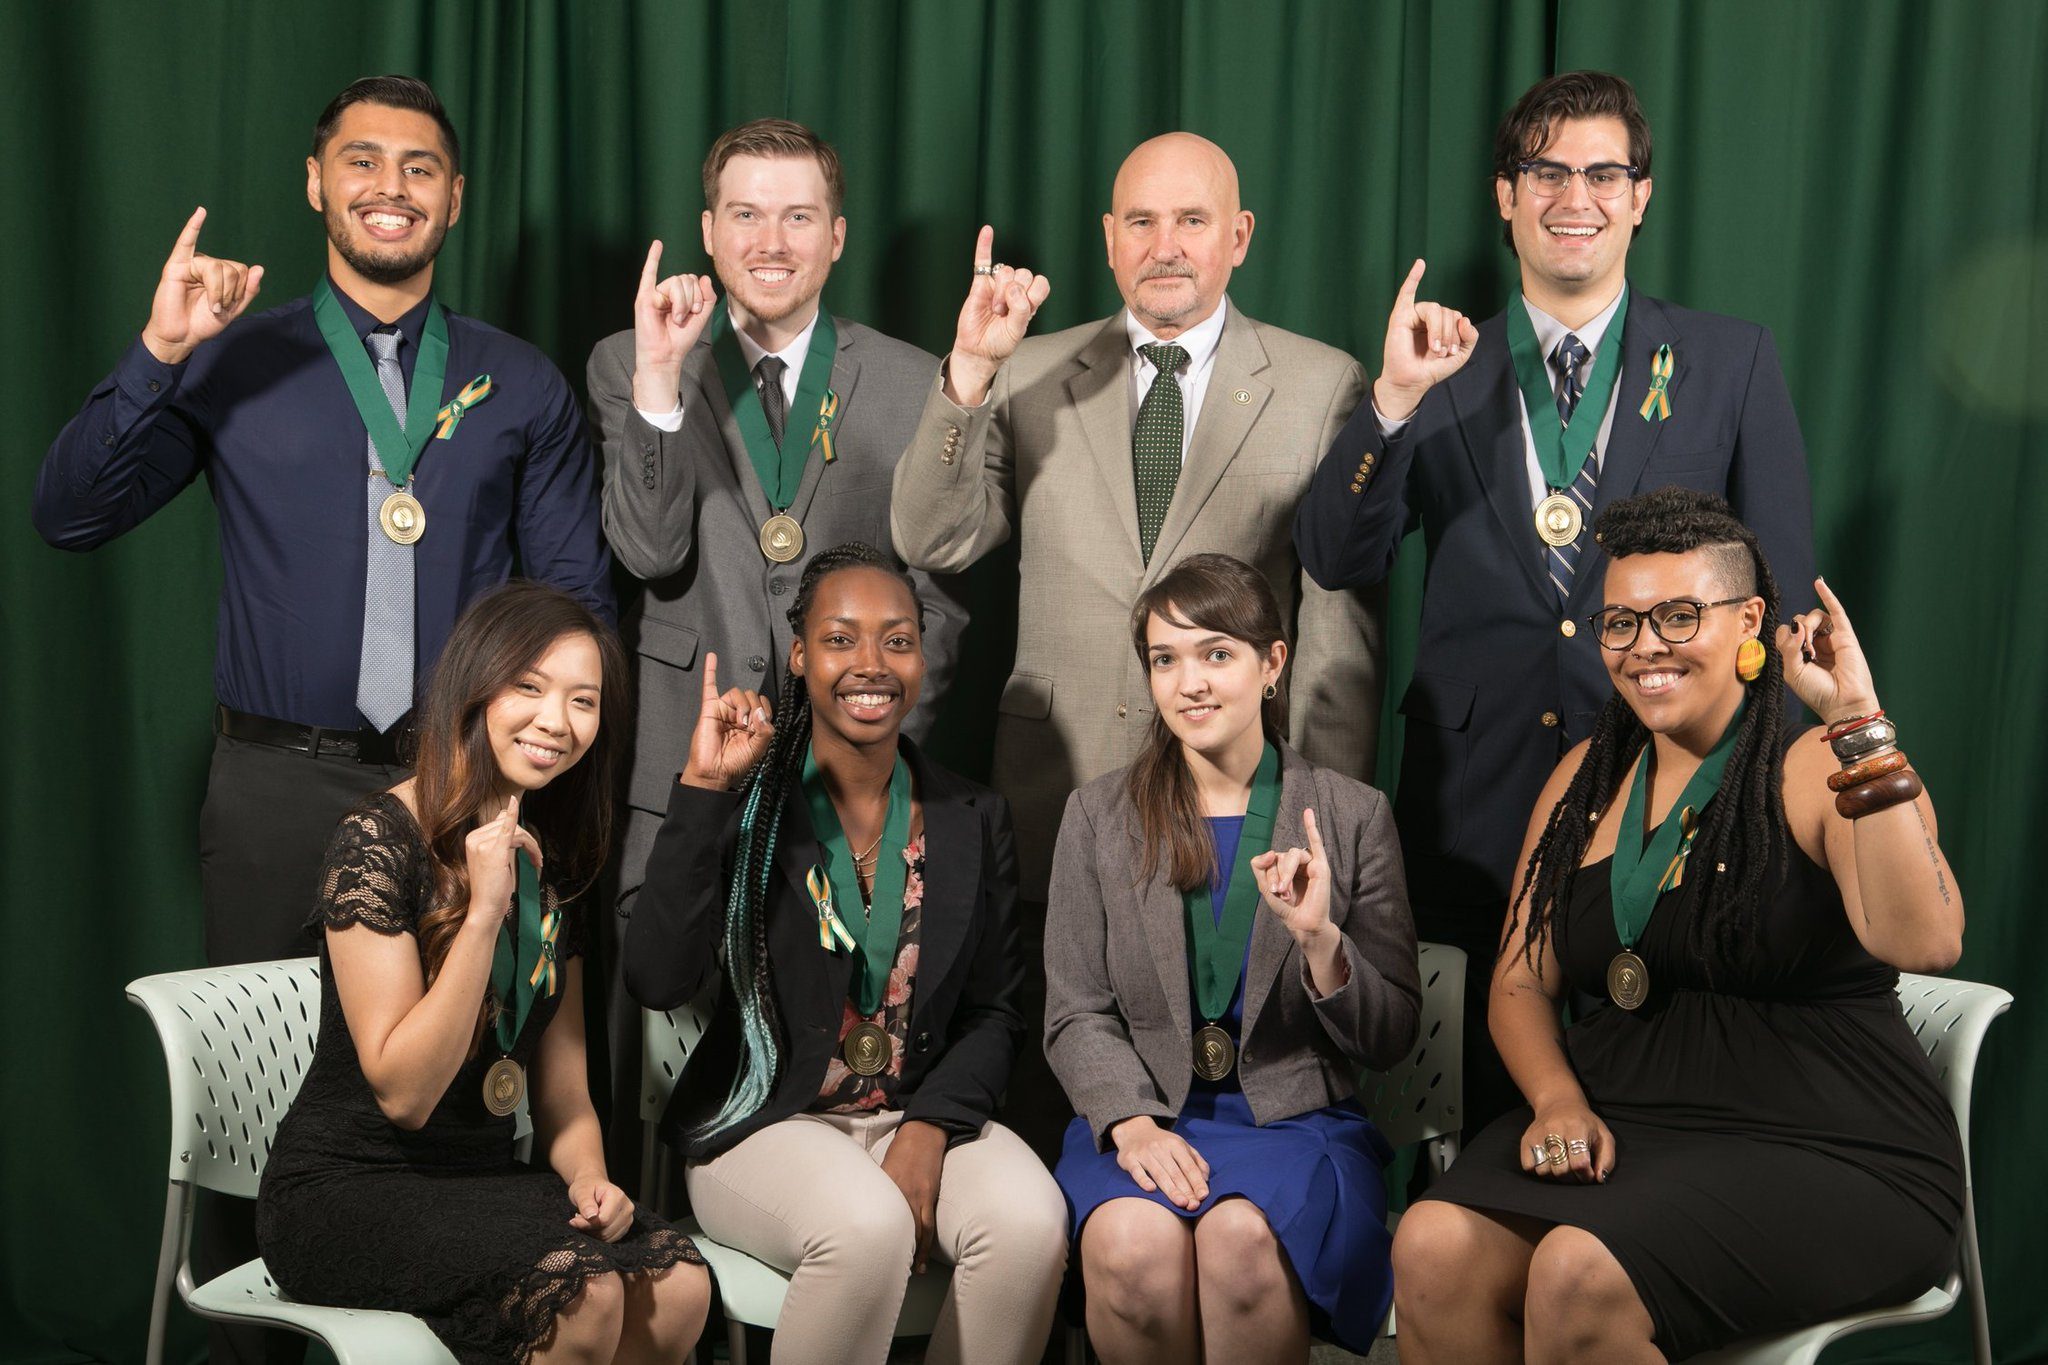 Congrats to our 2017 Dean's Award Winners! #MadeAtSacState #SacStateGrad @PrezNelsen https://t.co/V1QIMApWe5 https://t.co/lYR0pTSpjR